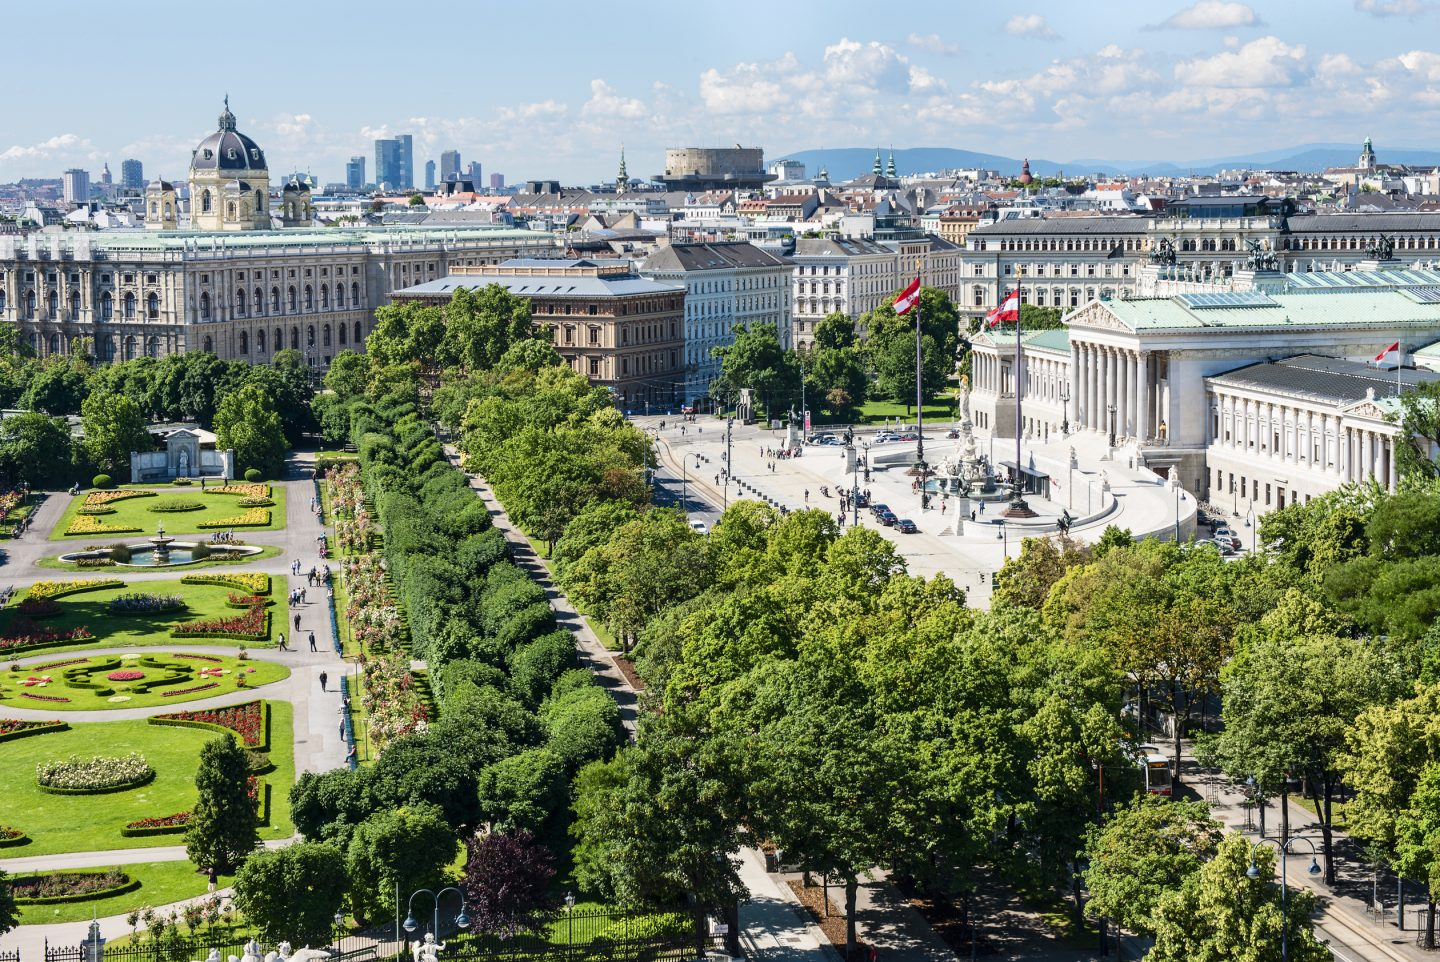 © WienTourismus Christian Stemper, View of the Ringstrasse Parliament